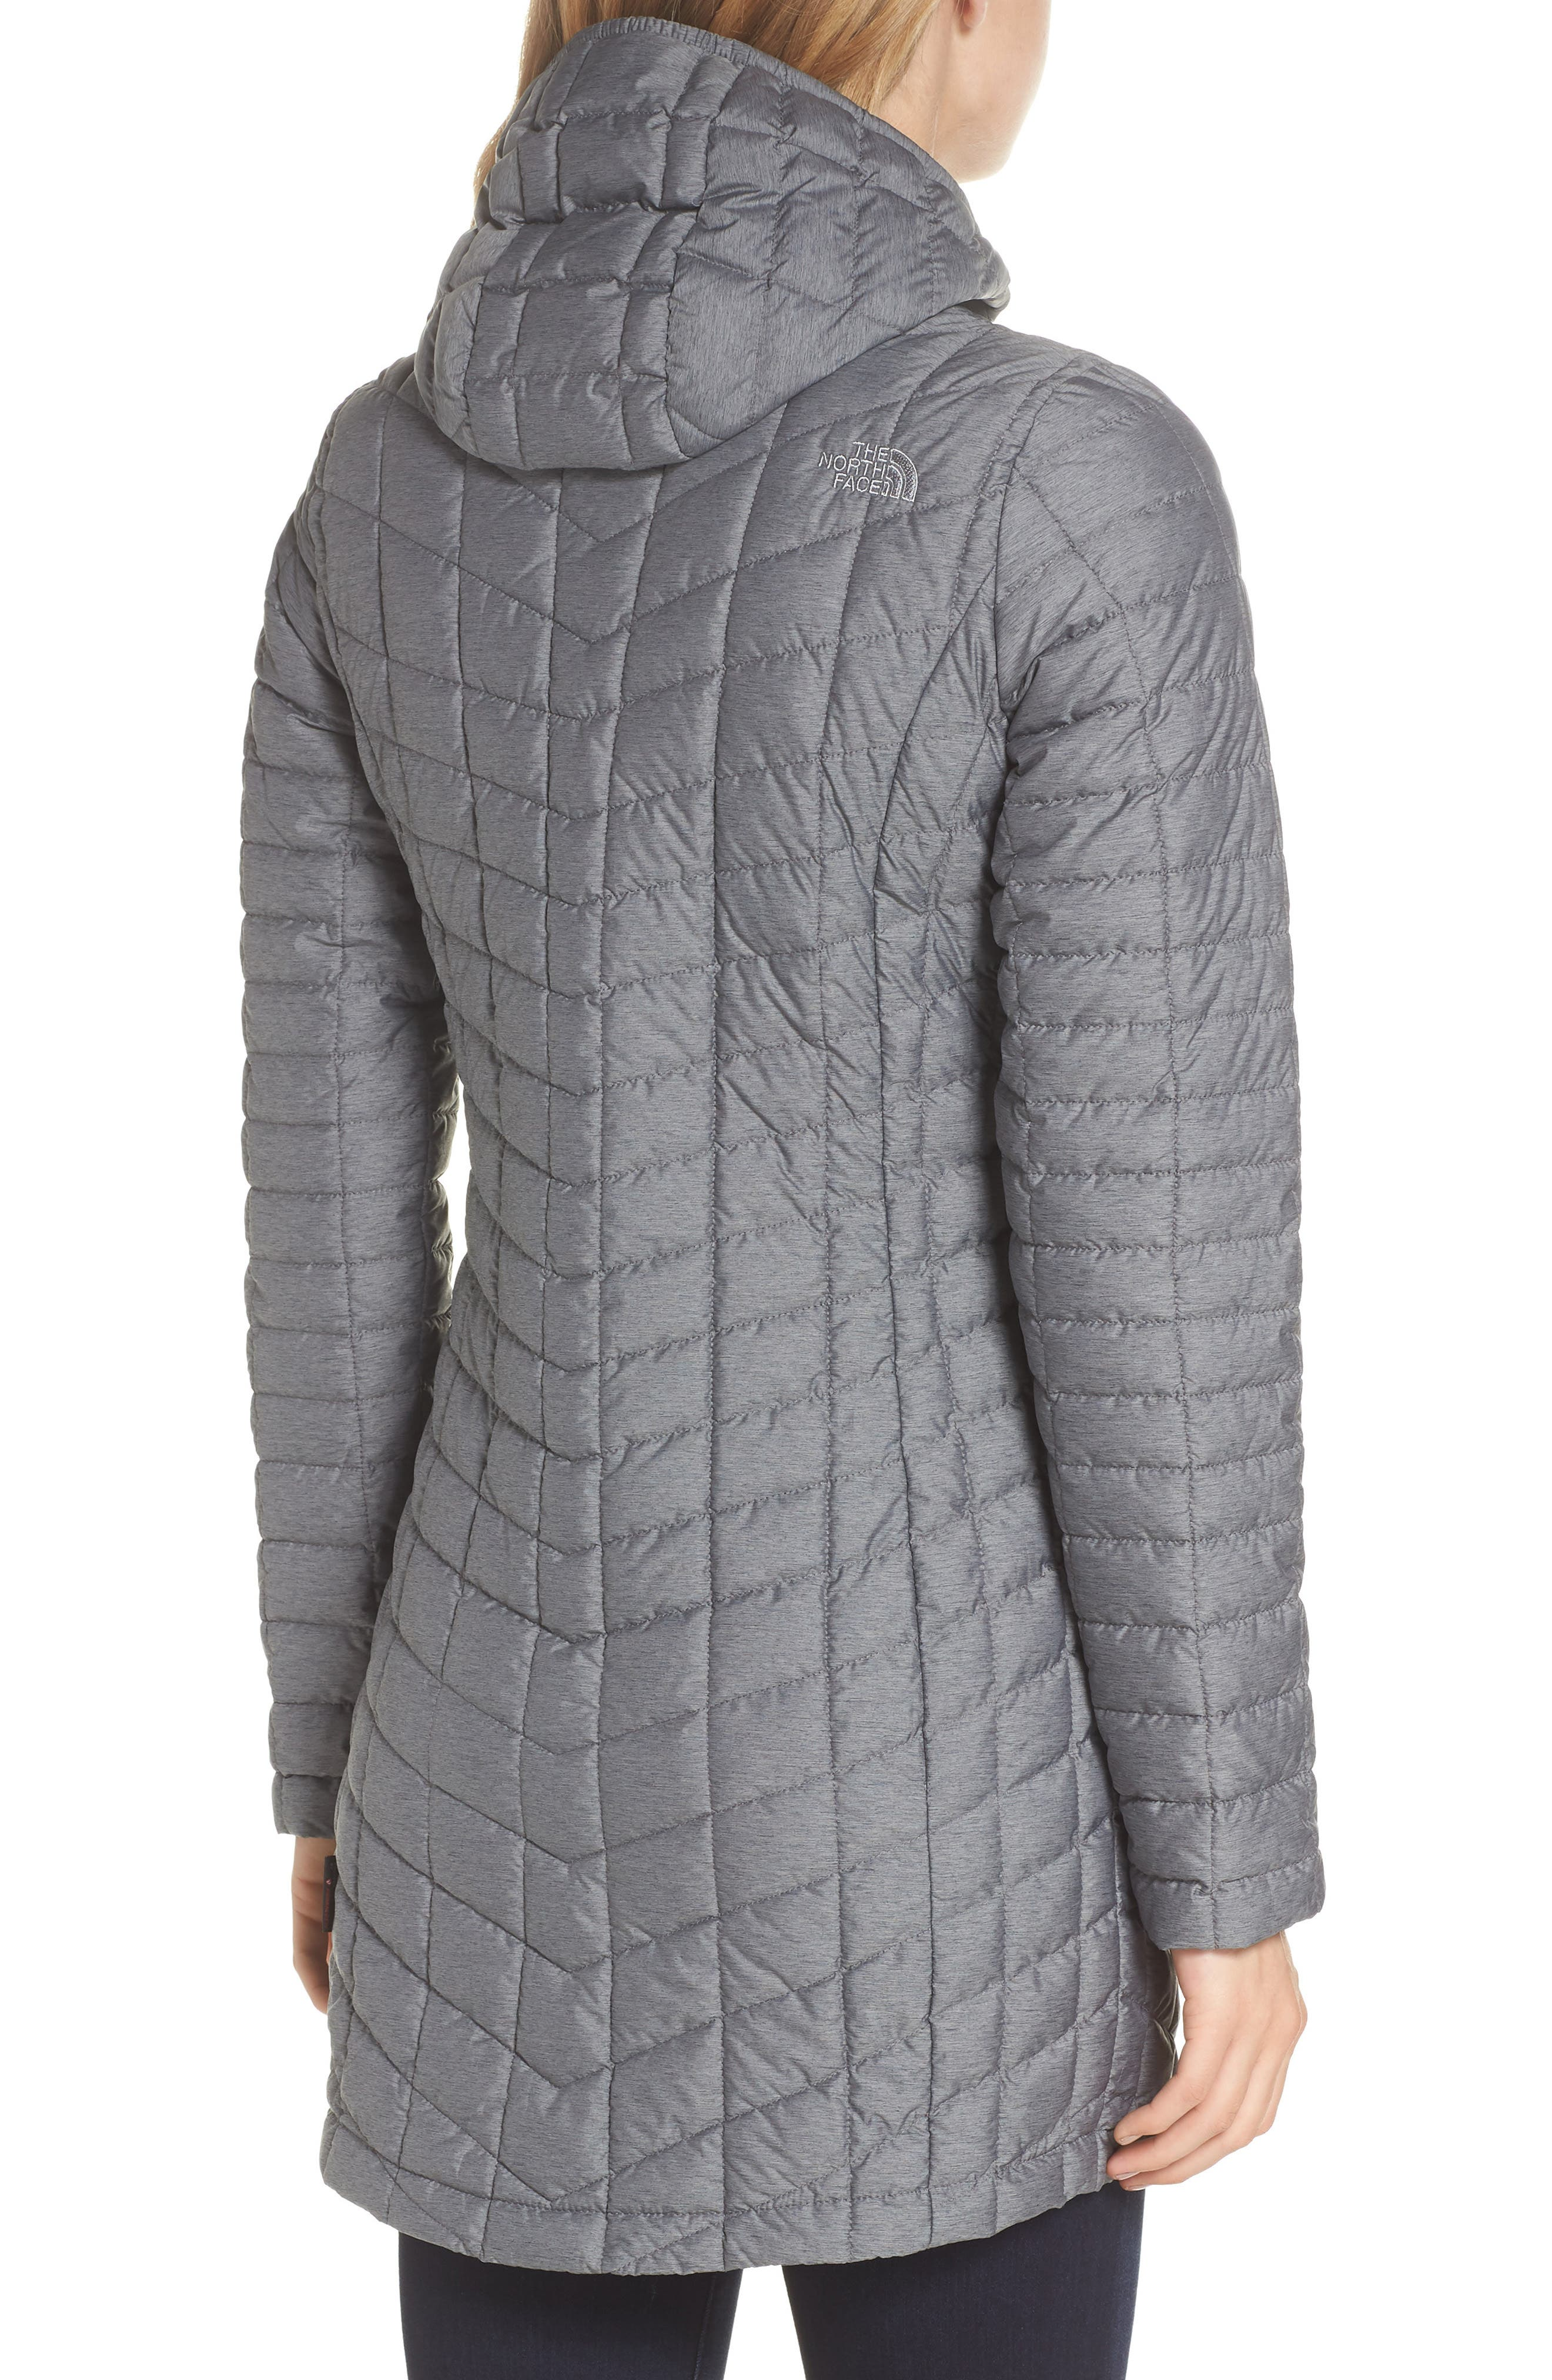 THE NORTH FACE,                             ThermoBall<sup>™</sup> Insulated Hooded Parka,                             Alternate thumbnail 2, color,                             033